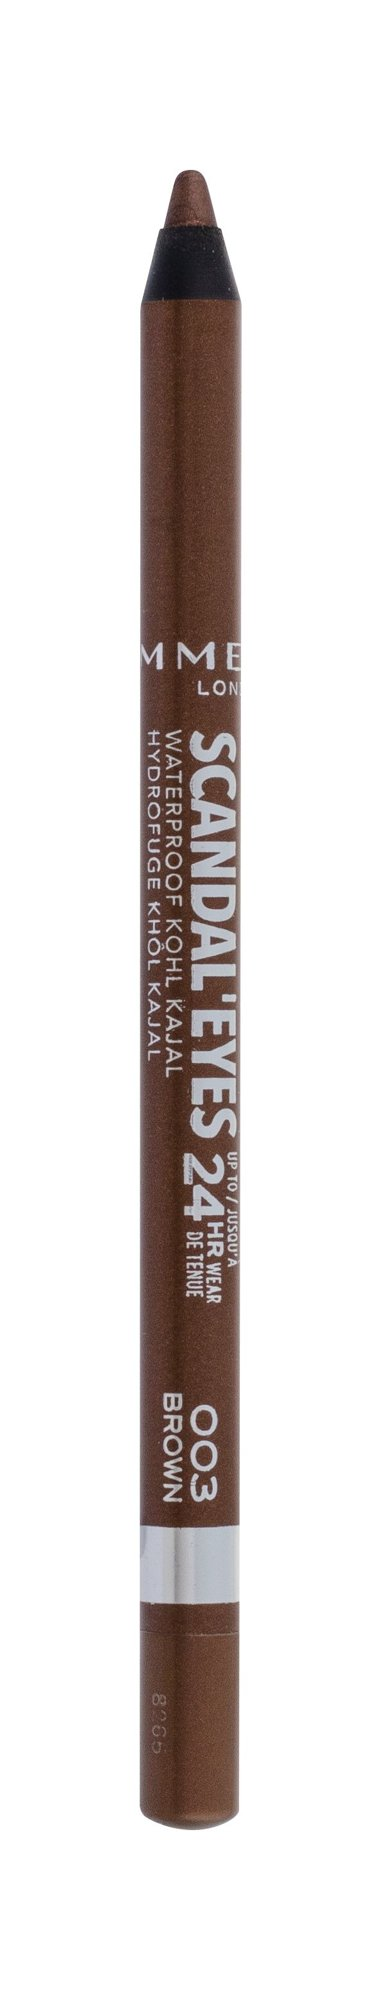 Rimmel London Scandal Eyes Eye Pencil 1,3ml 003 Brown